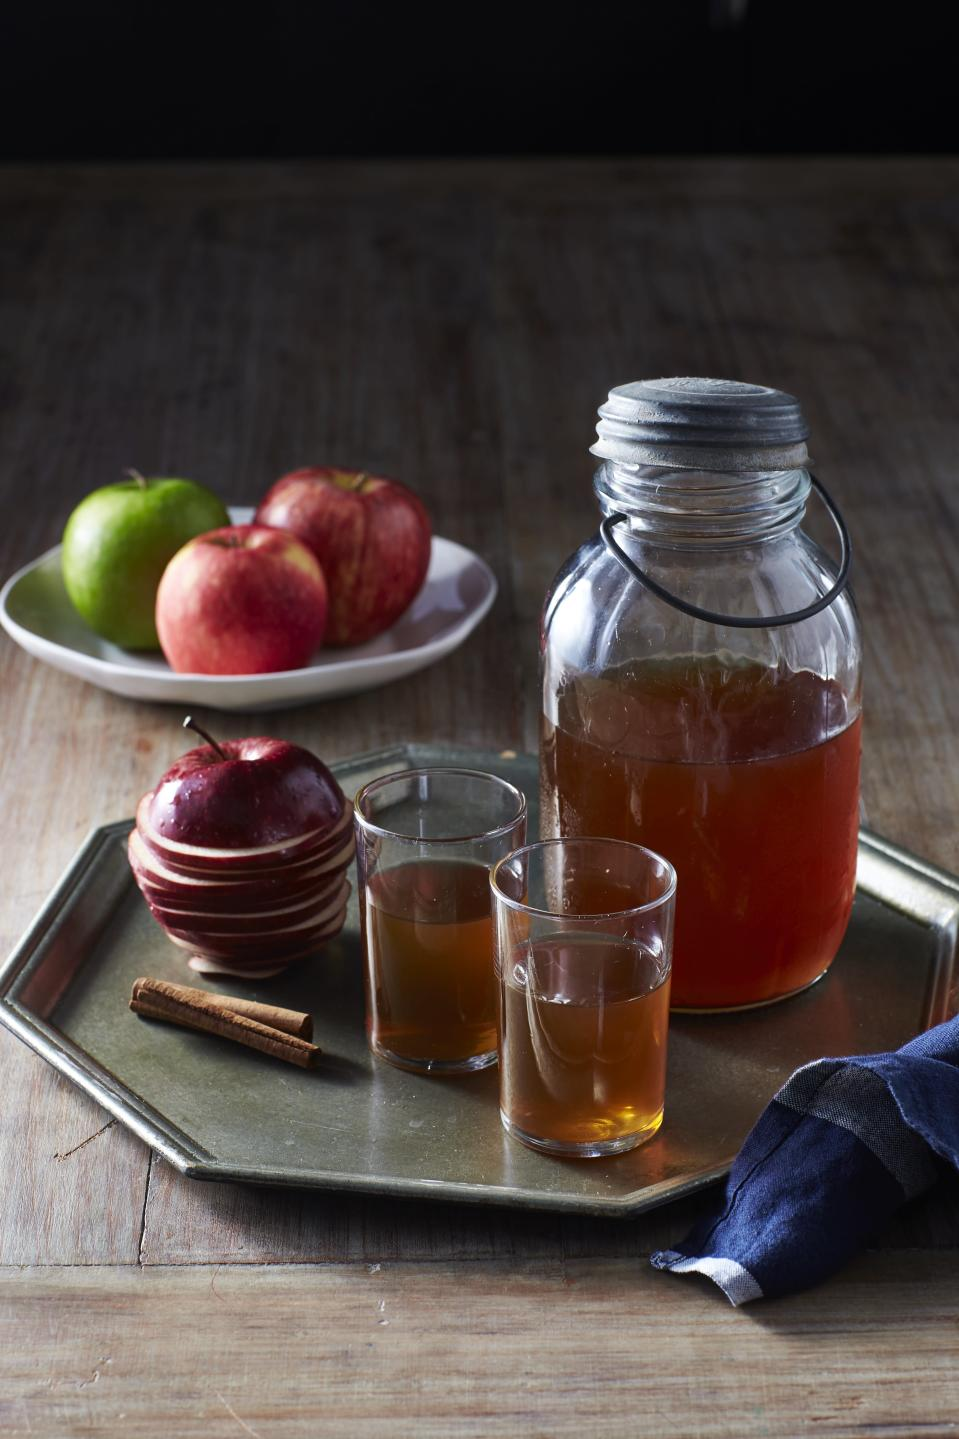 """<p>A delicious apple cider cocktail just so happens to be the perfect autumn drink.</p> <p><a href=""""https://www.myrecipes.com/recipe/apple-pie-moonshine"""" rel=""""nofollow noopener"""" target=""""_blank"""" data-ylk=""""slk:Apple Pie Moonshine Recipe"""" class=""""link rapid-noclick-resp"""">Apple Pie Moonshine Recipe</a></p>"""